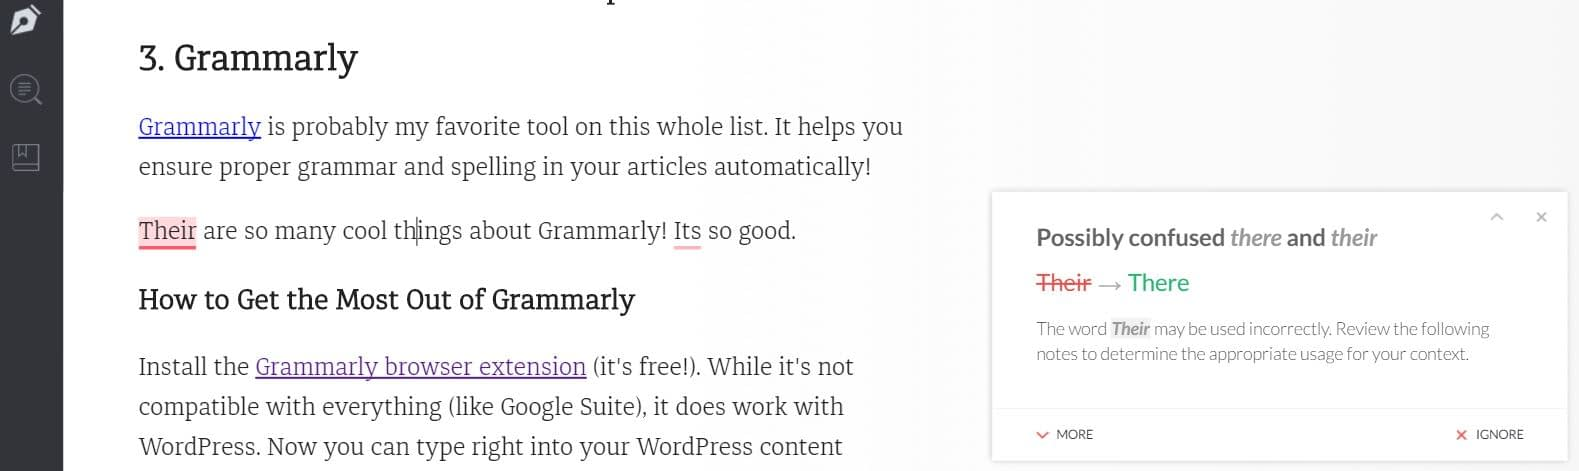 9 Insanely Useful Blogging Tools for Writing, SEO, Marketing